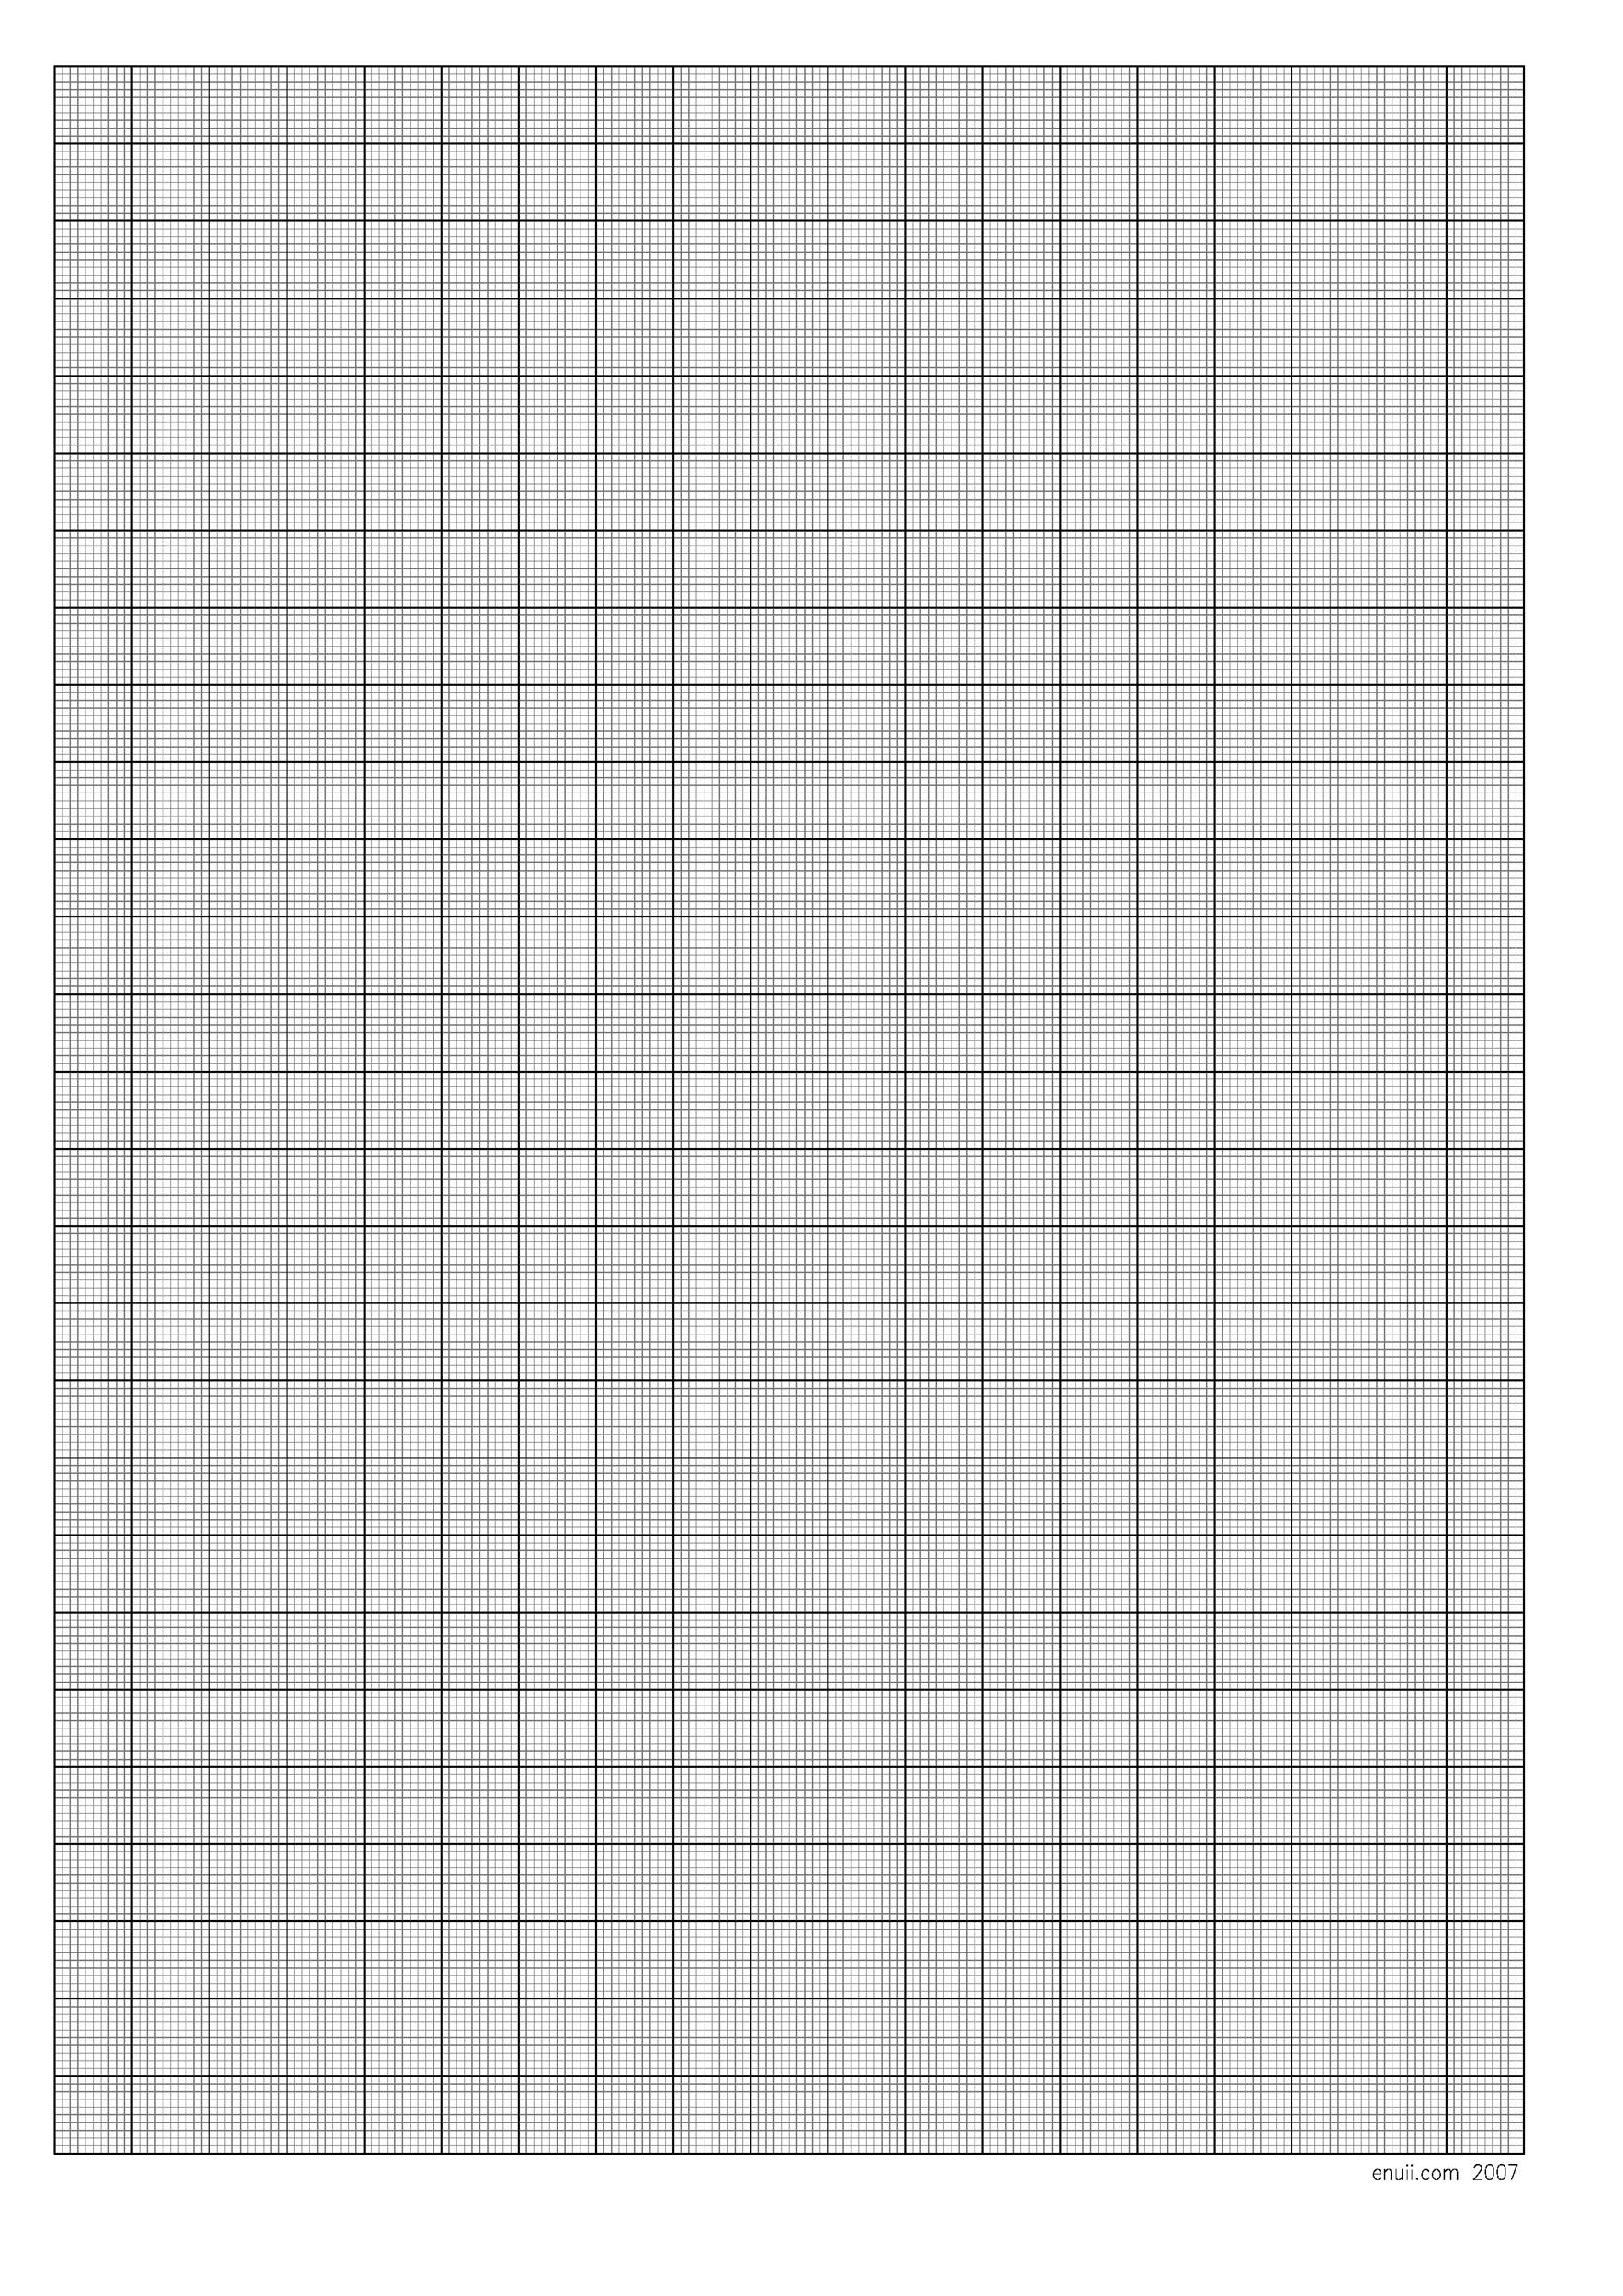 worksheet Graph Paper Image 30 free printable graph paper templates word pdf template lab 02